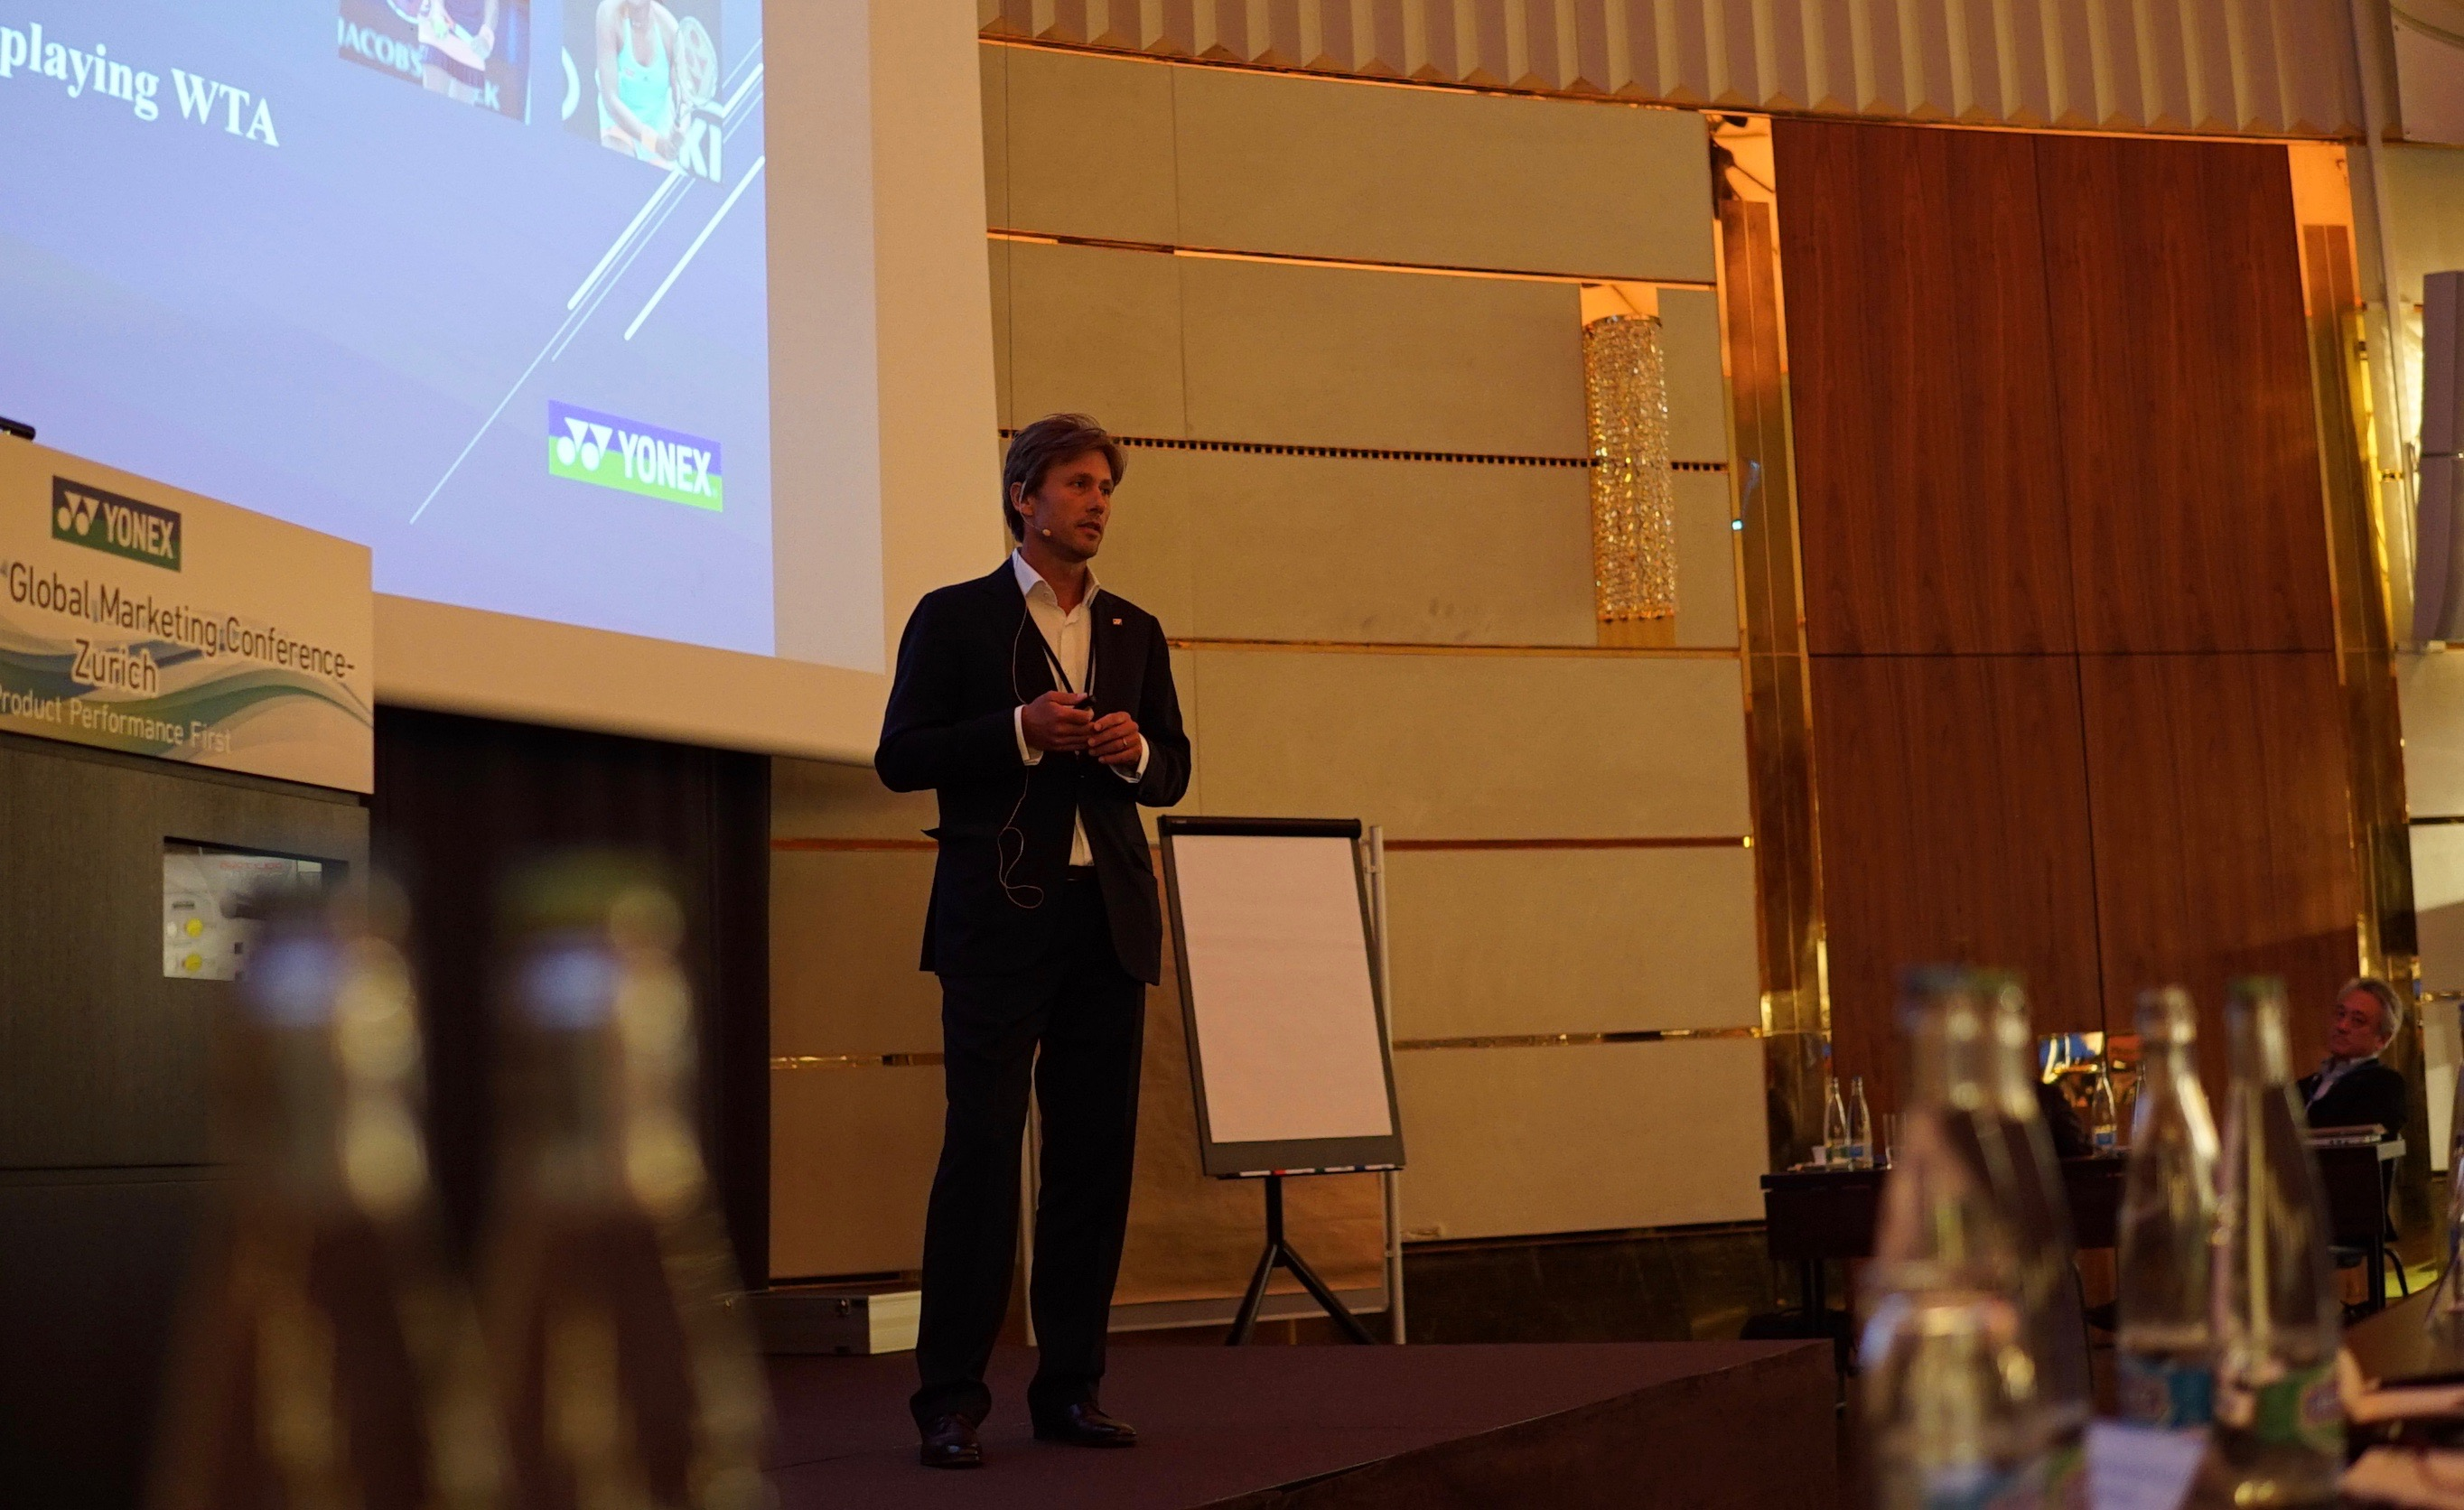 Tennis Coach Nick Horvat at YONEX Global Marketing Conference in Zurich, Switzerland